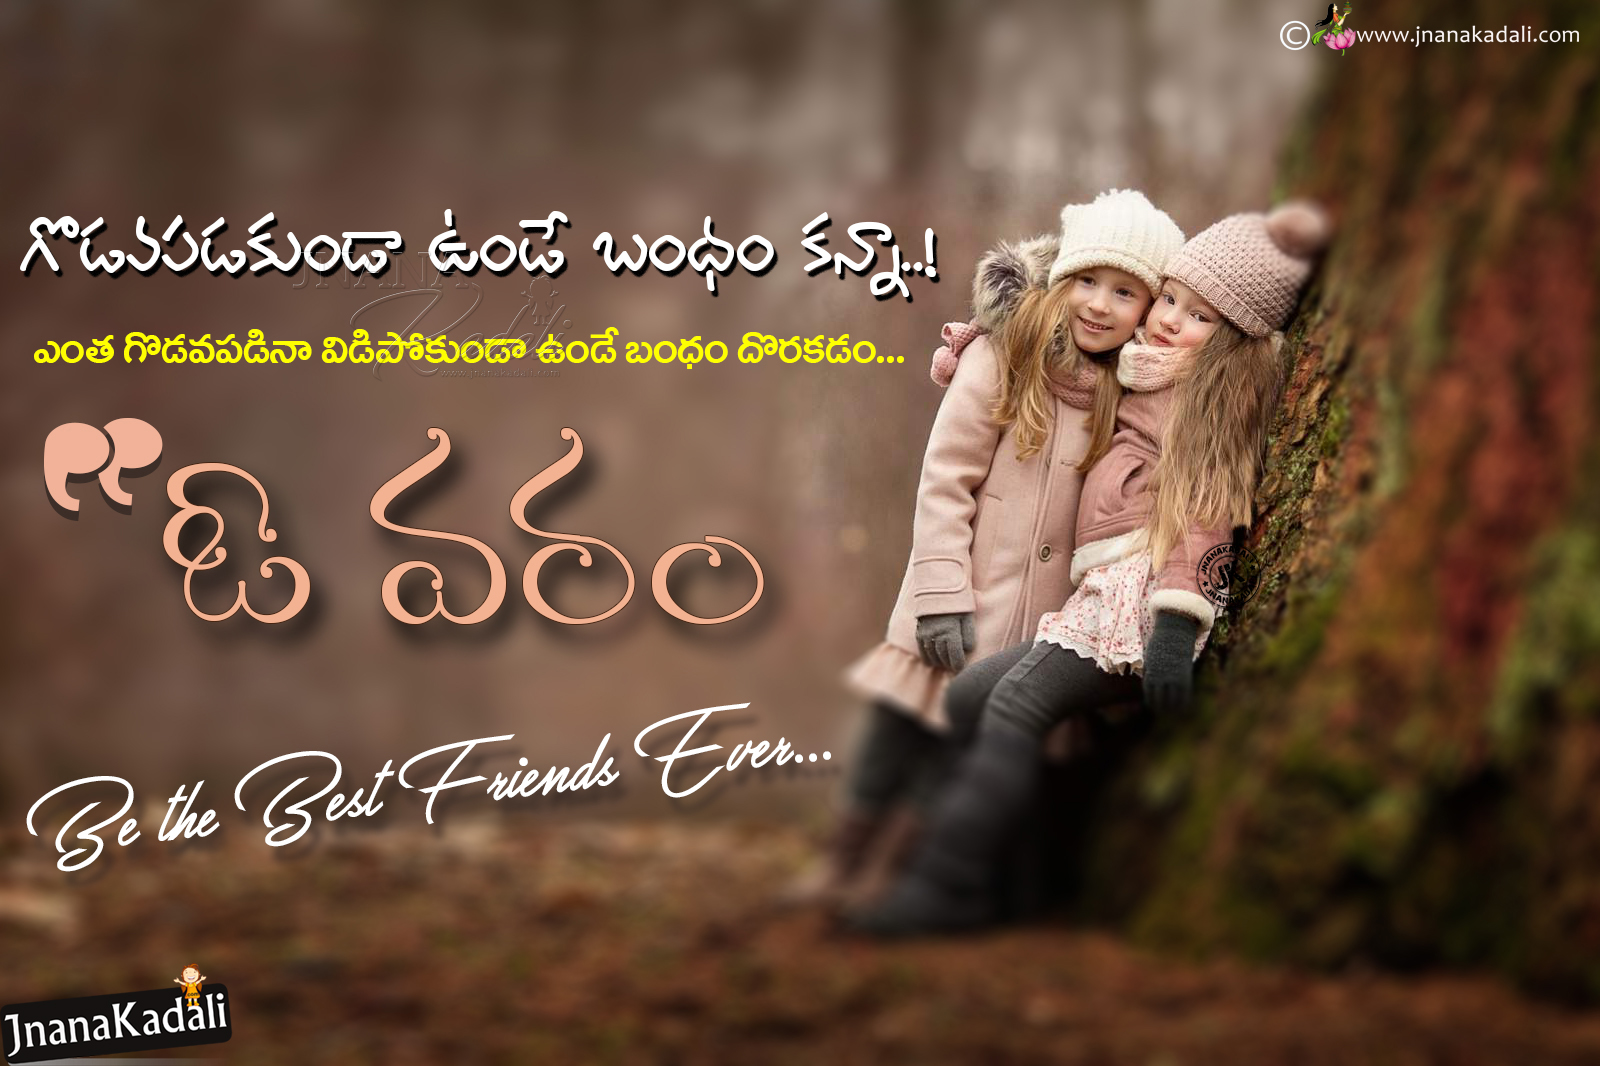 Cute Relationship Quotes Messages In Telugu The Best Relationship